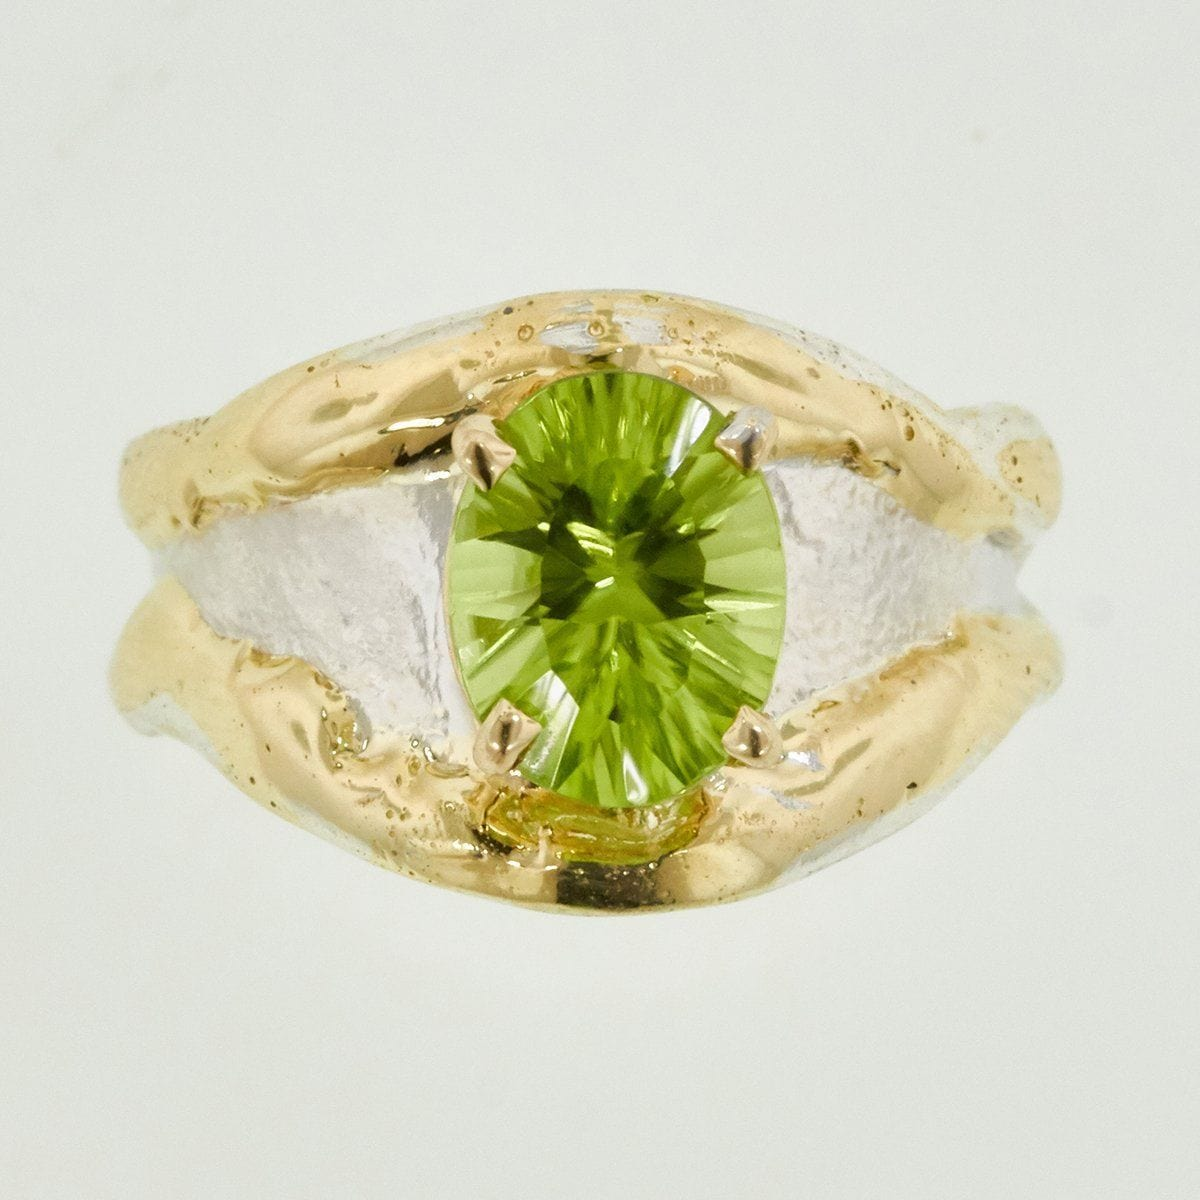 14K Gold & Crystalline Silver Peridot Ring - 32883-Fusion Designs-Renee Taylor Gallery